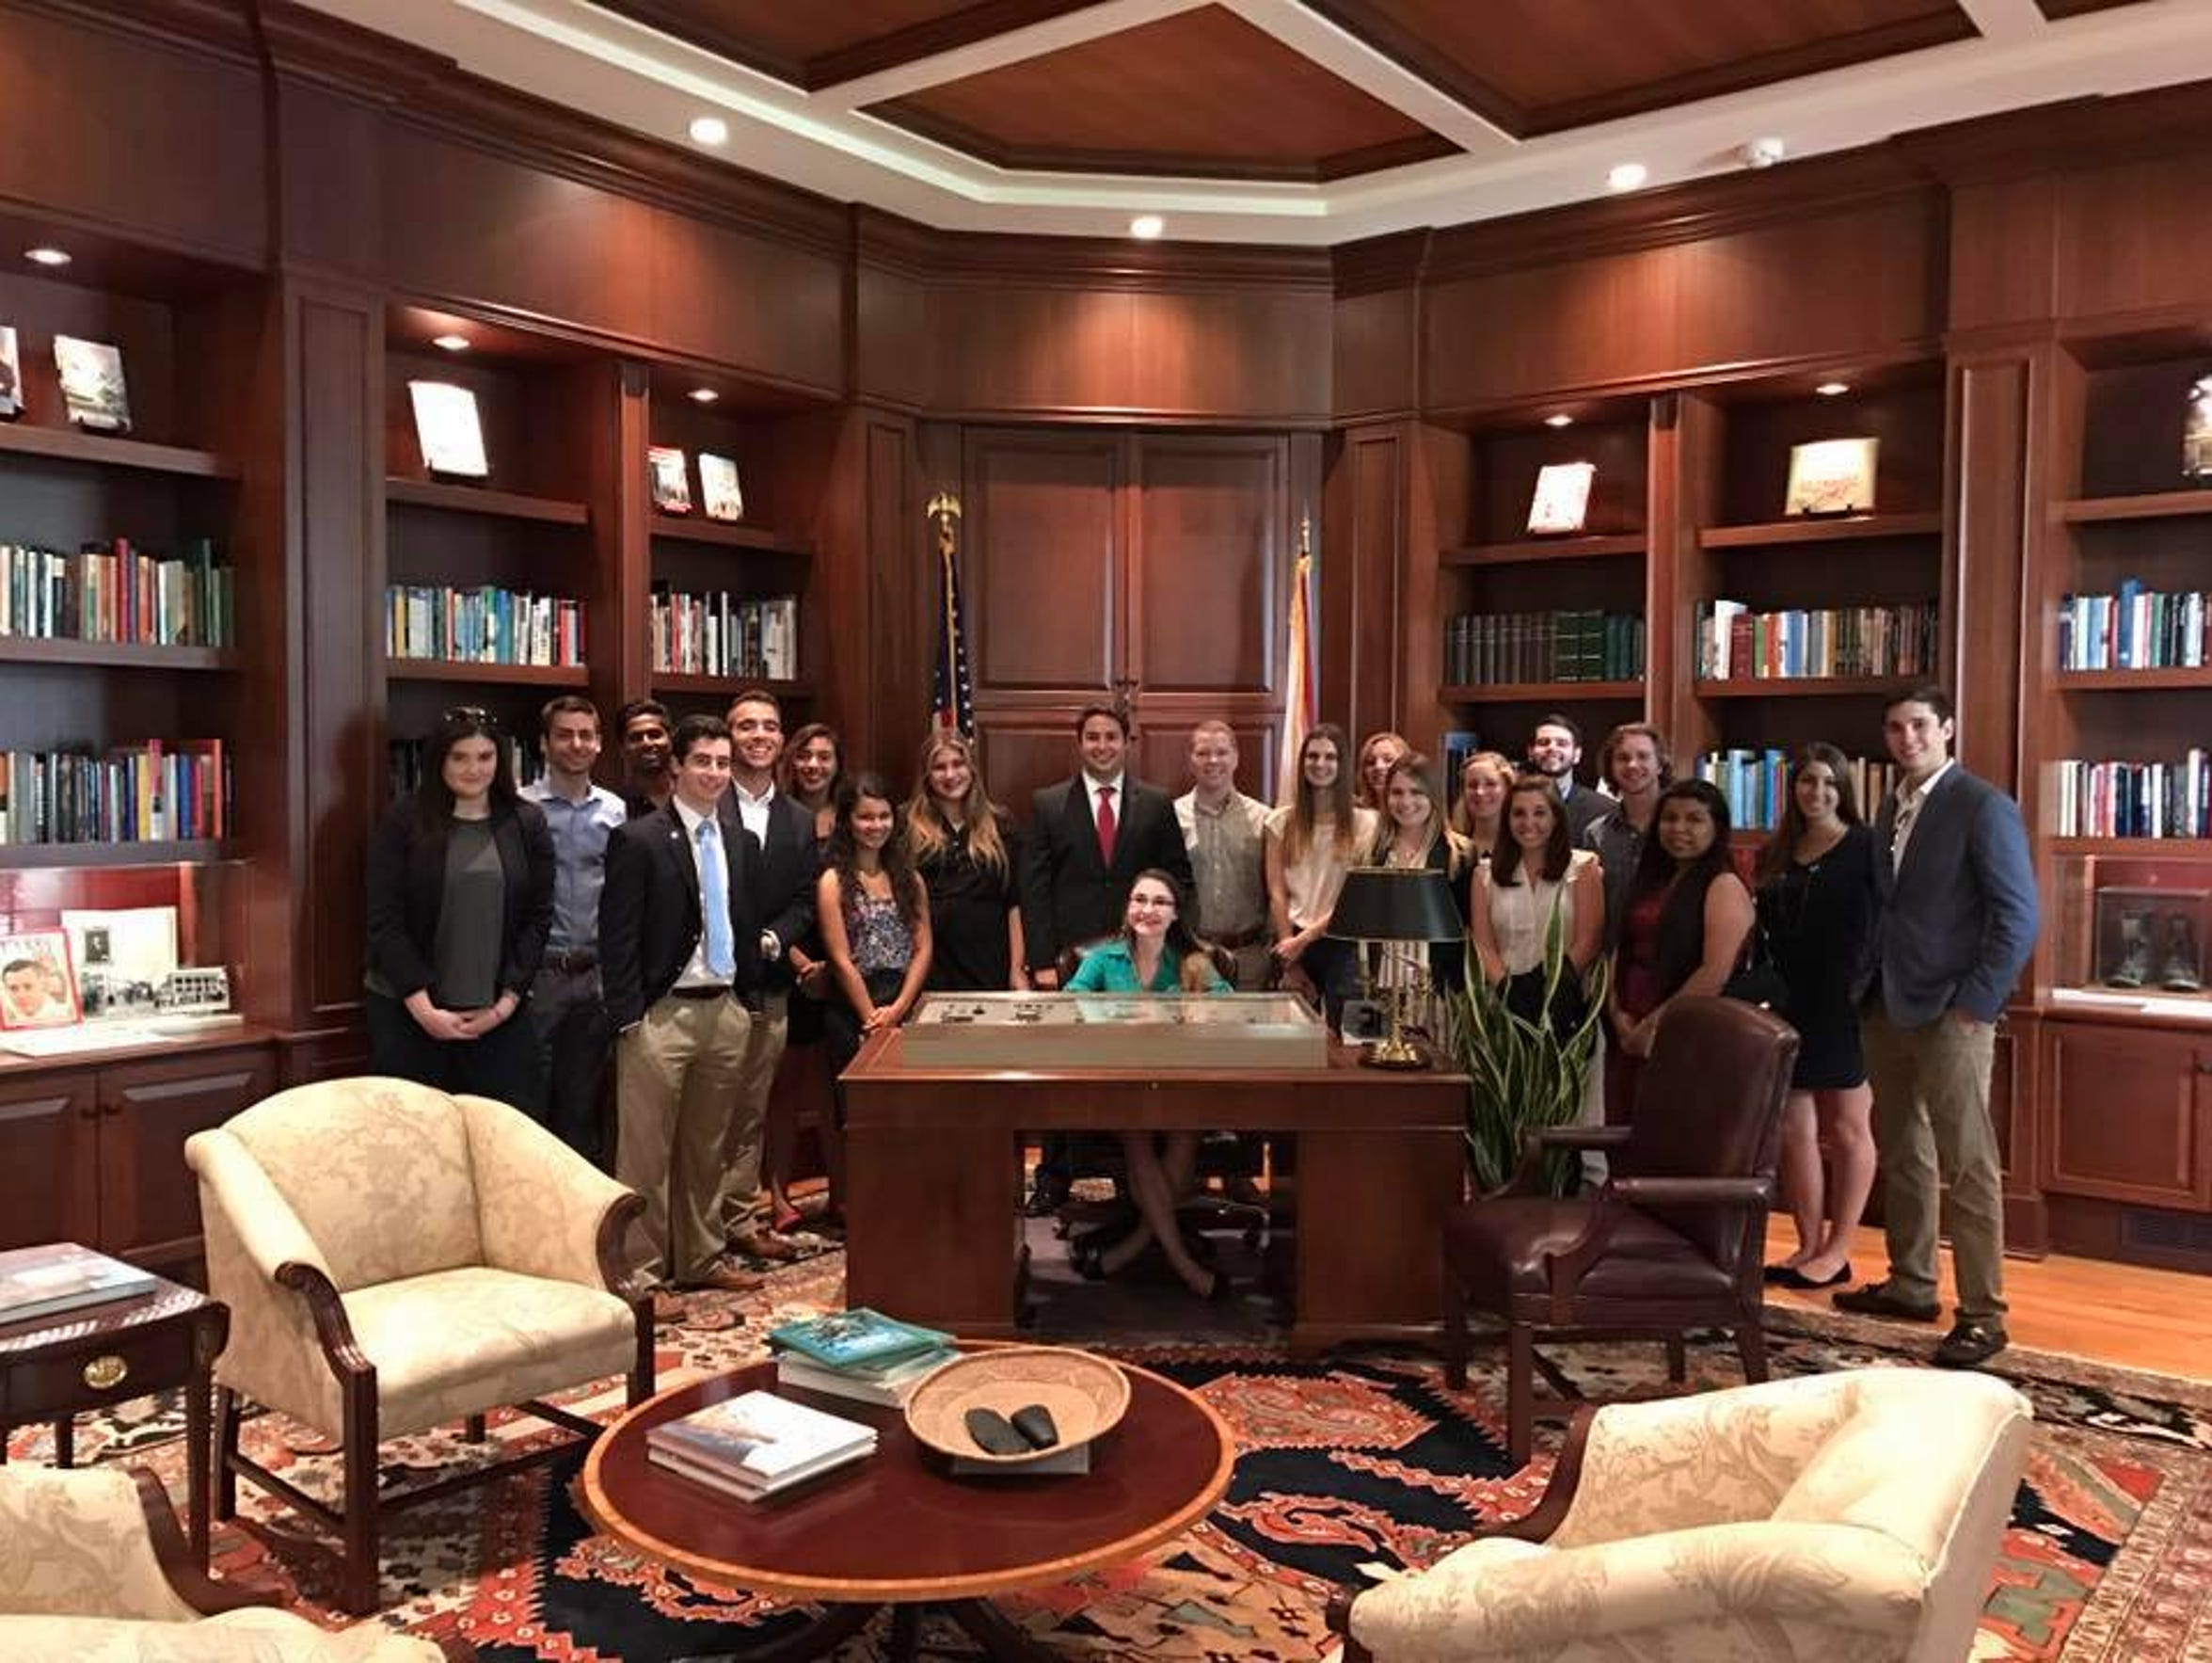 Noles Engaged in Politics took a tour of the governor's